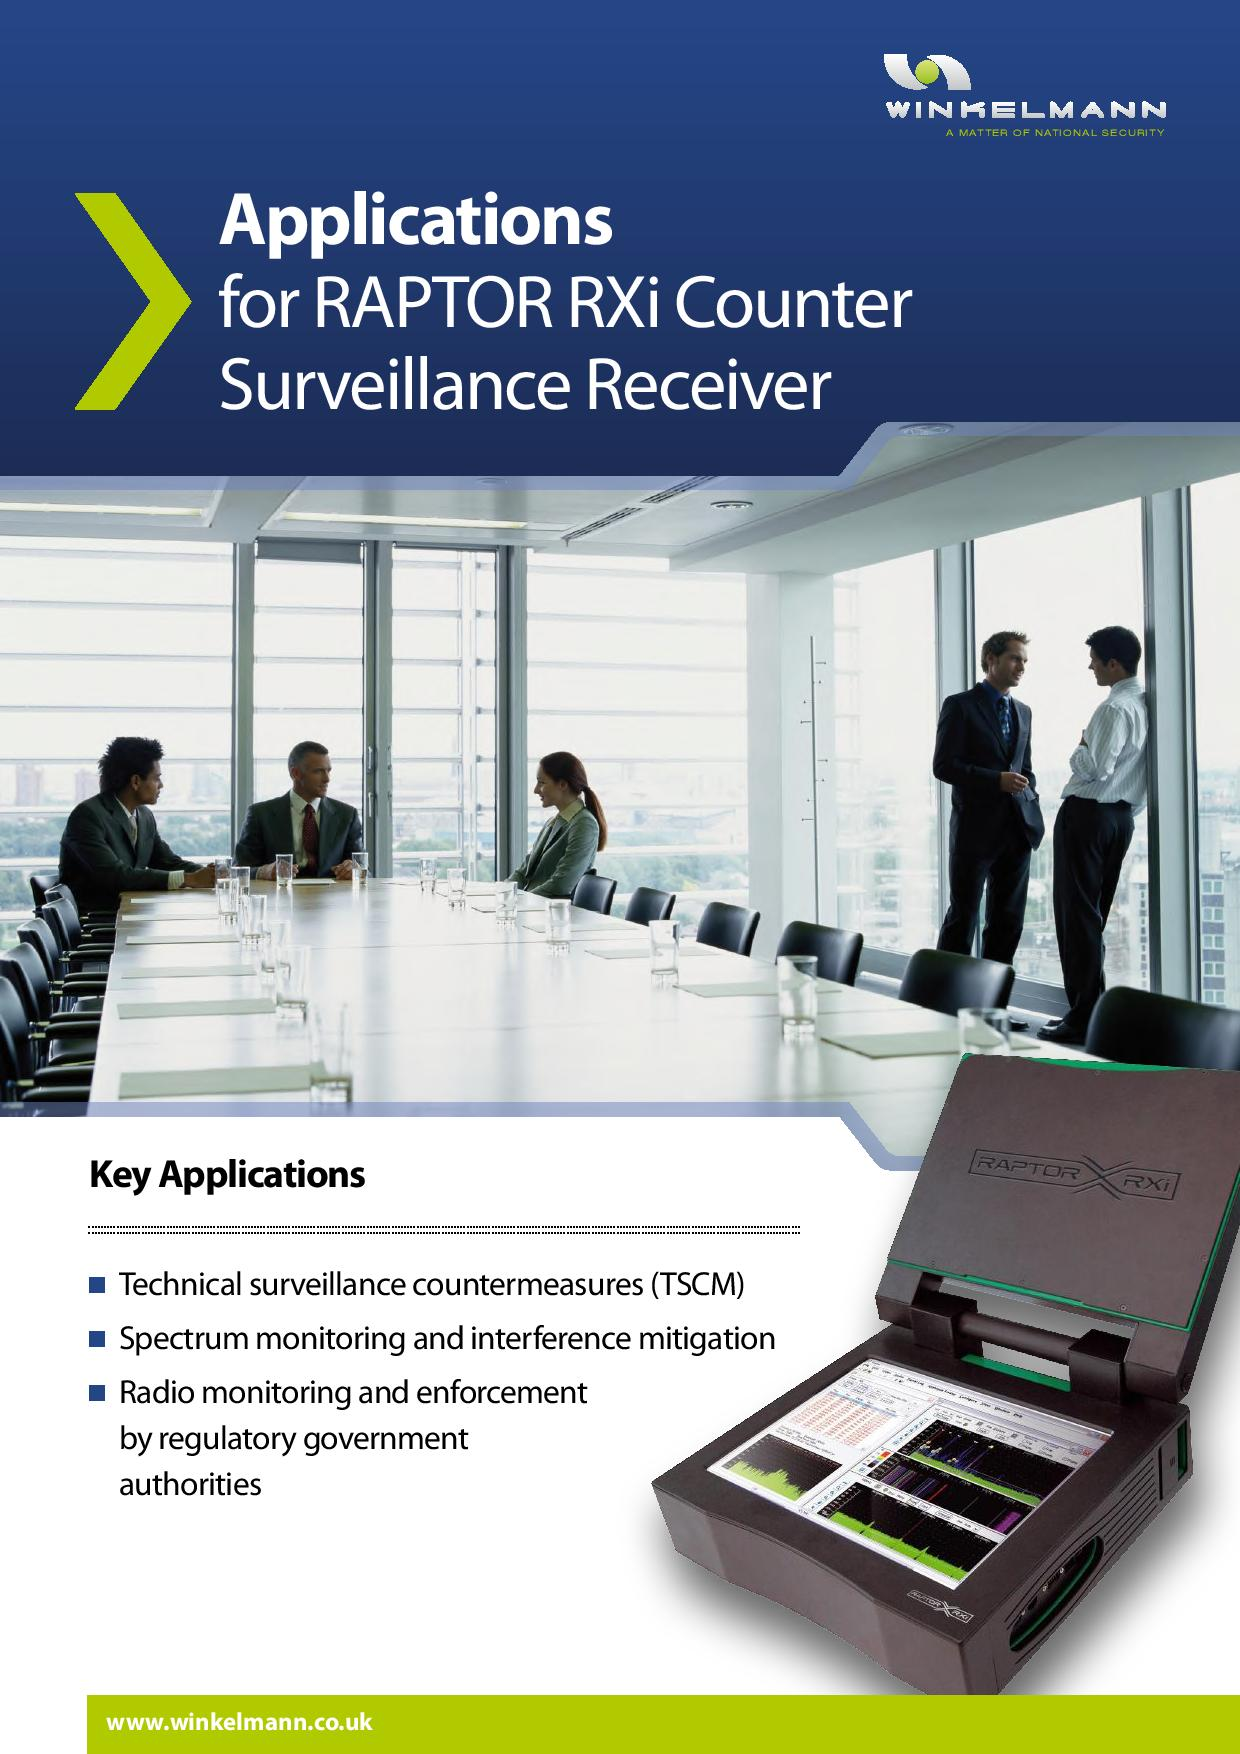 Applications for RAPTOR RXi Counter Surveillance Receiver